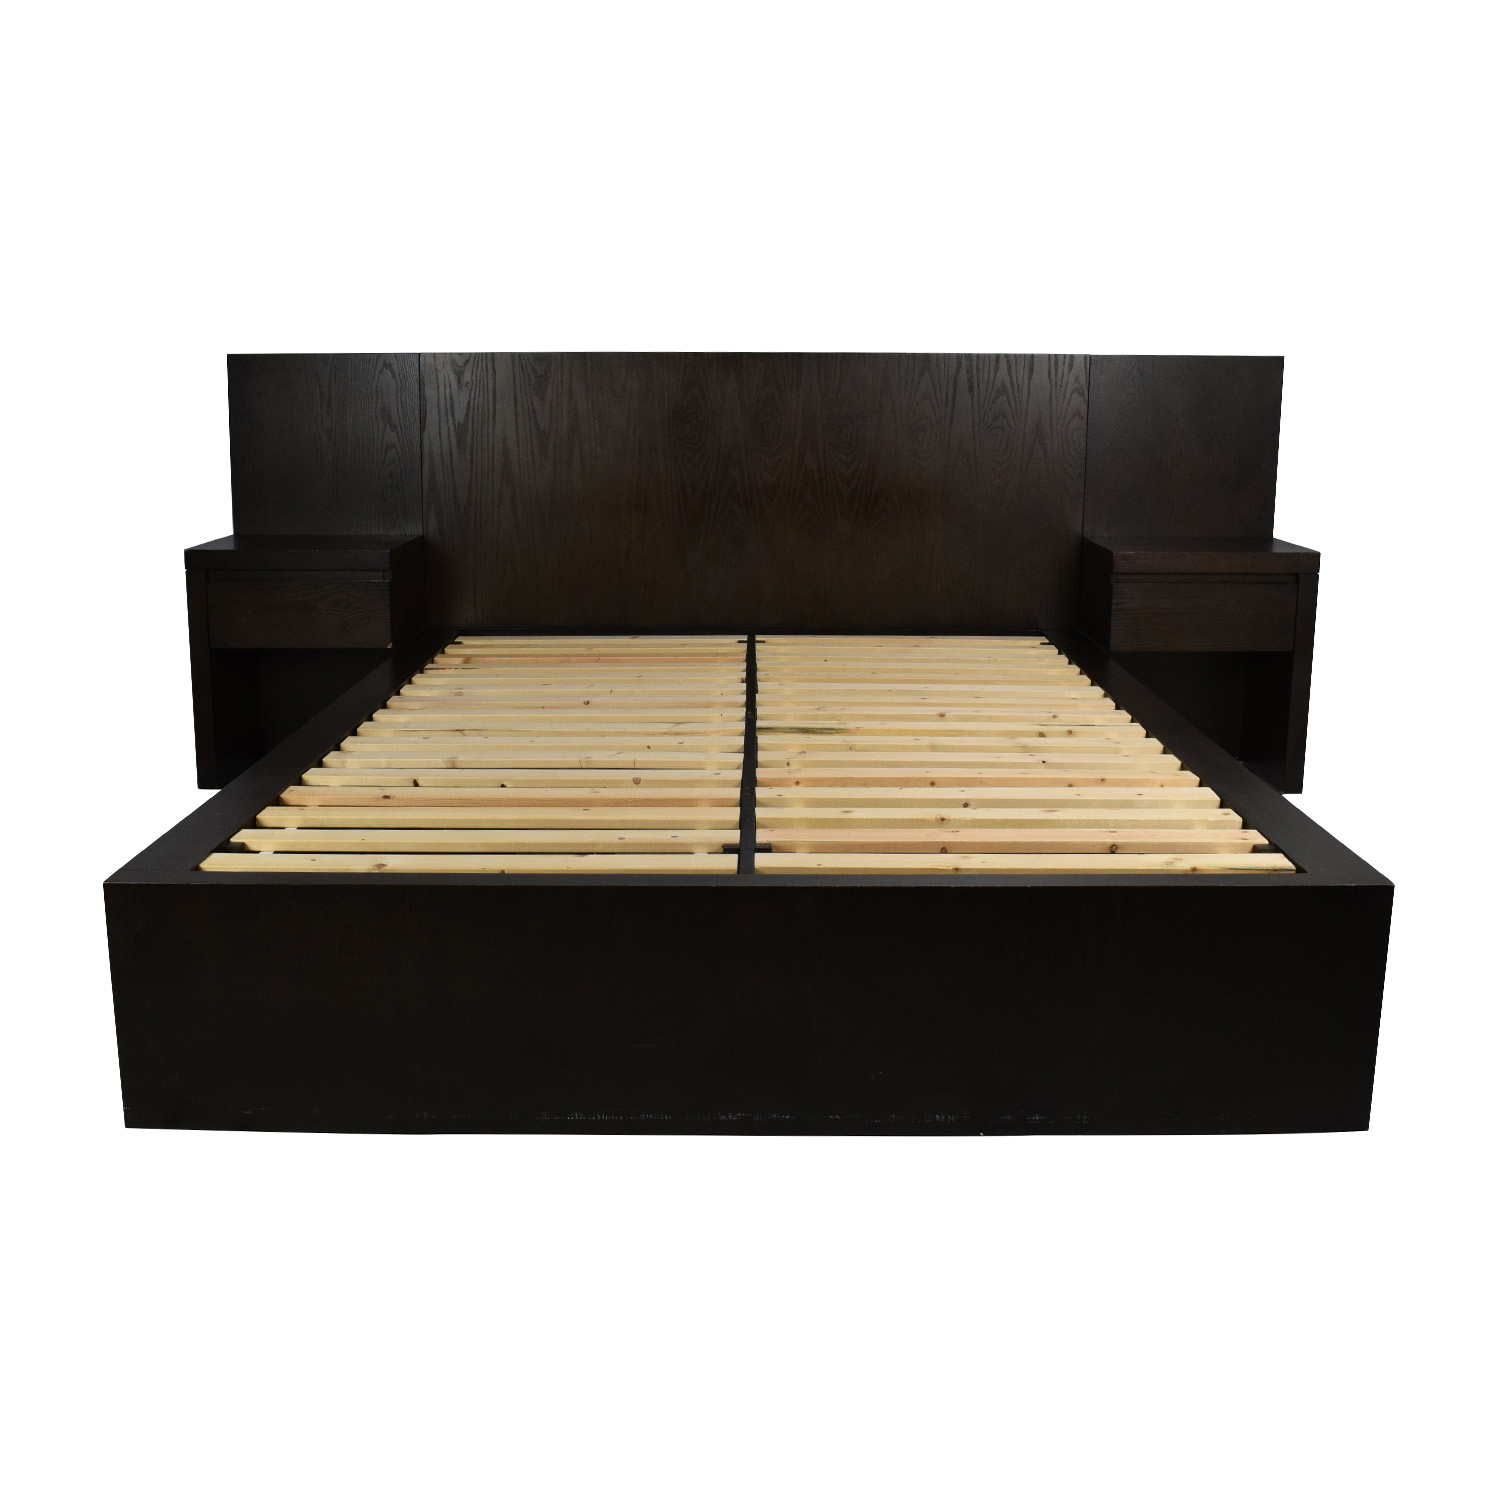 West Elm West Elm Queen Size Storage Platform Bed Frame Discount